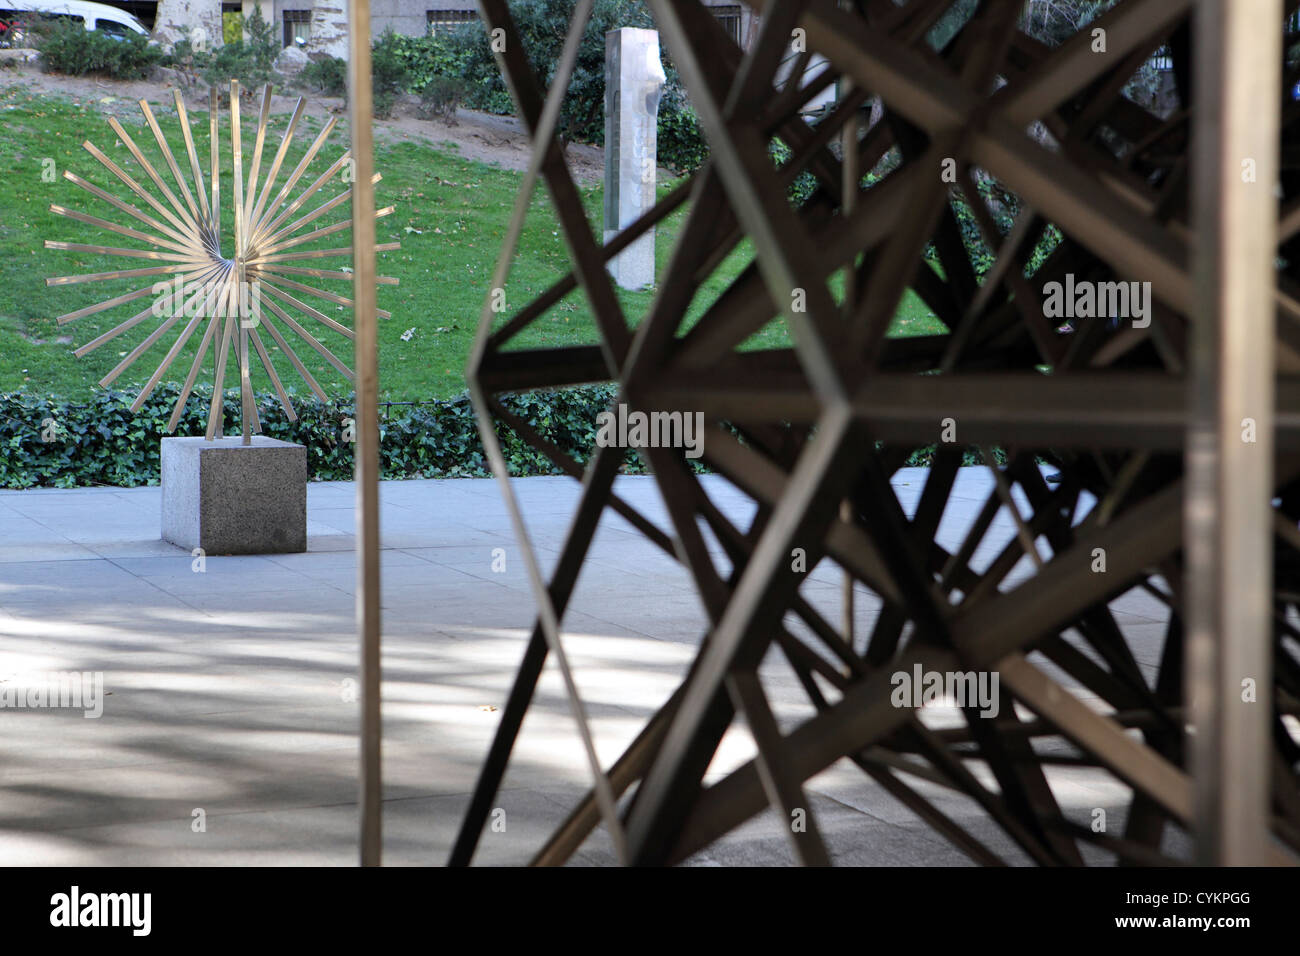 Museum Public Art With Abstract Sculptures By Spanish